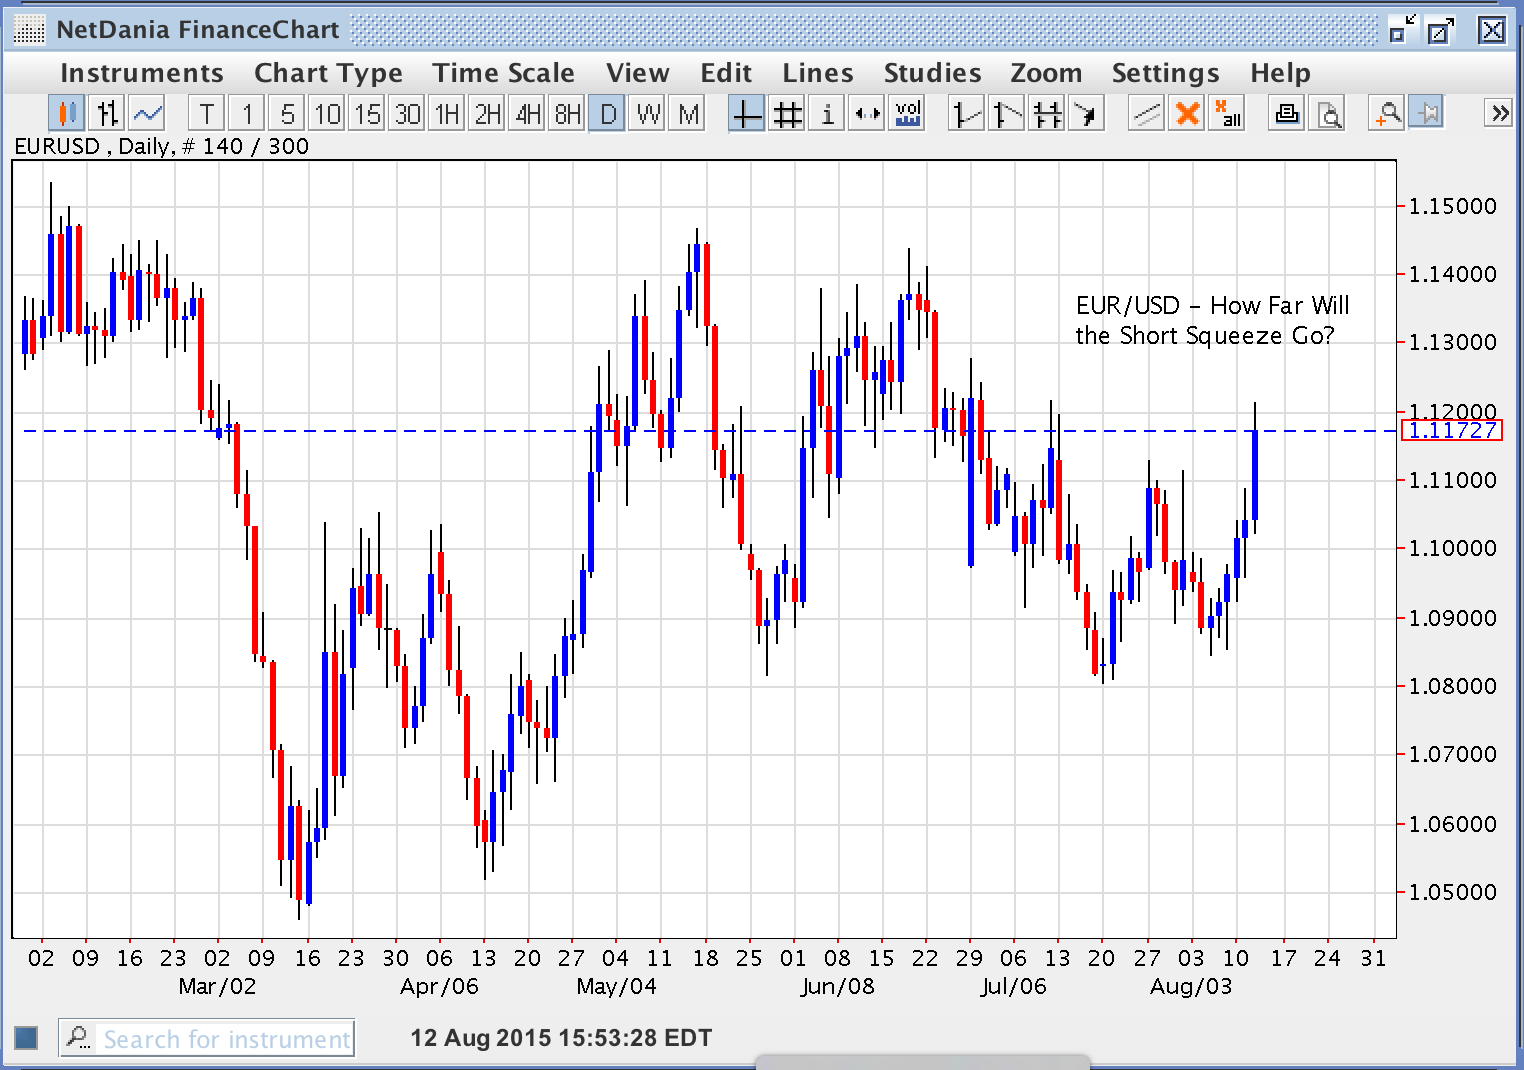 EUR/USD – How Far Will The Short Squeeze Go?